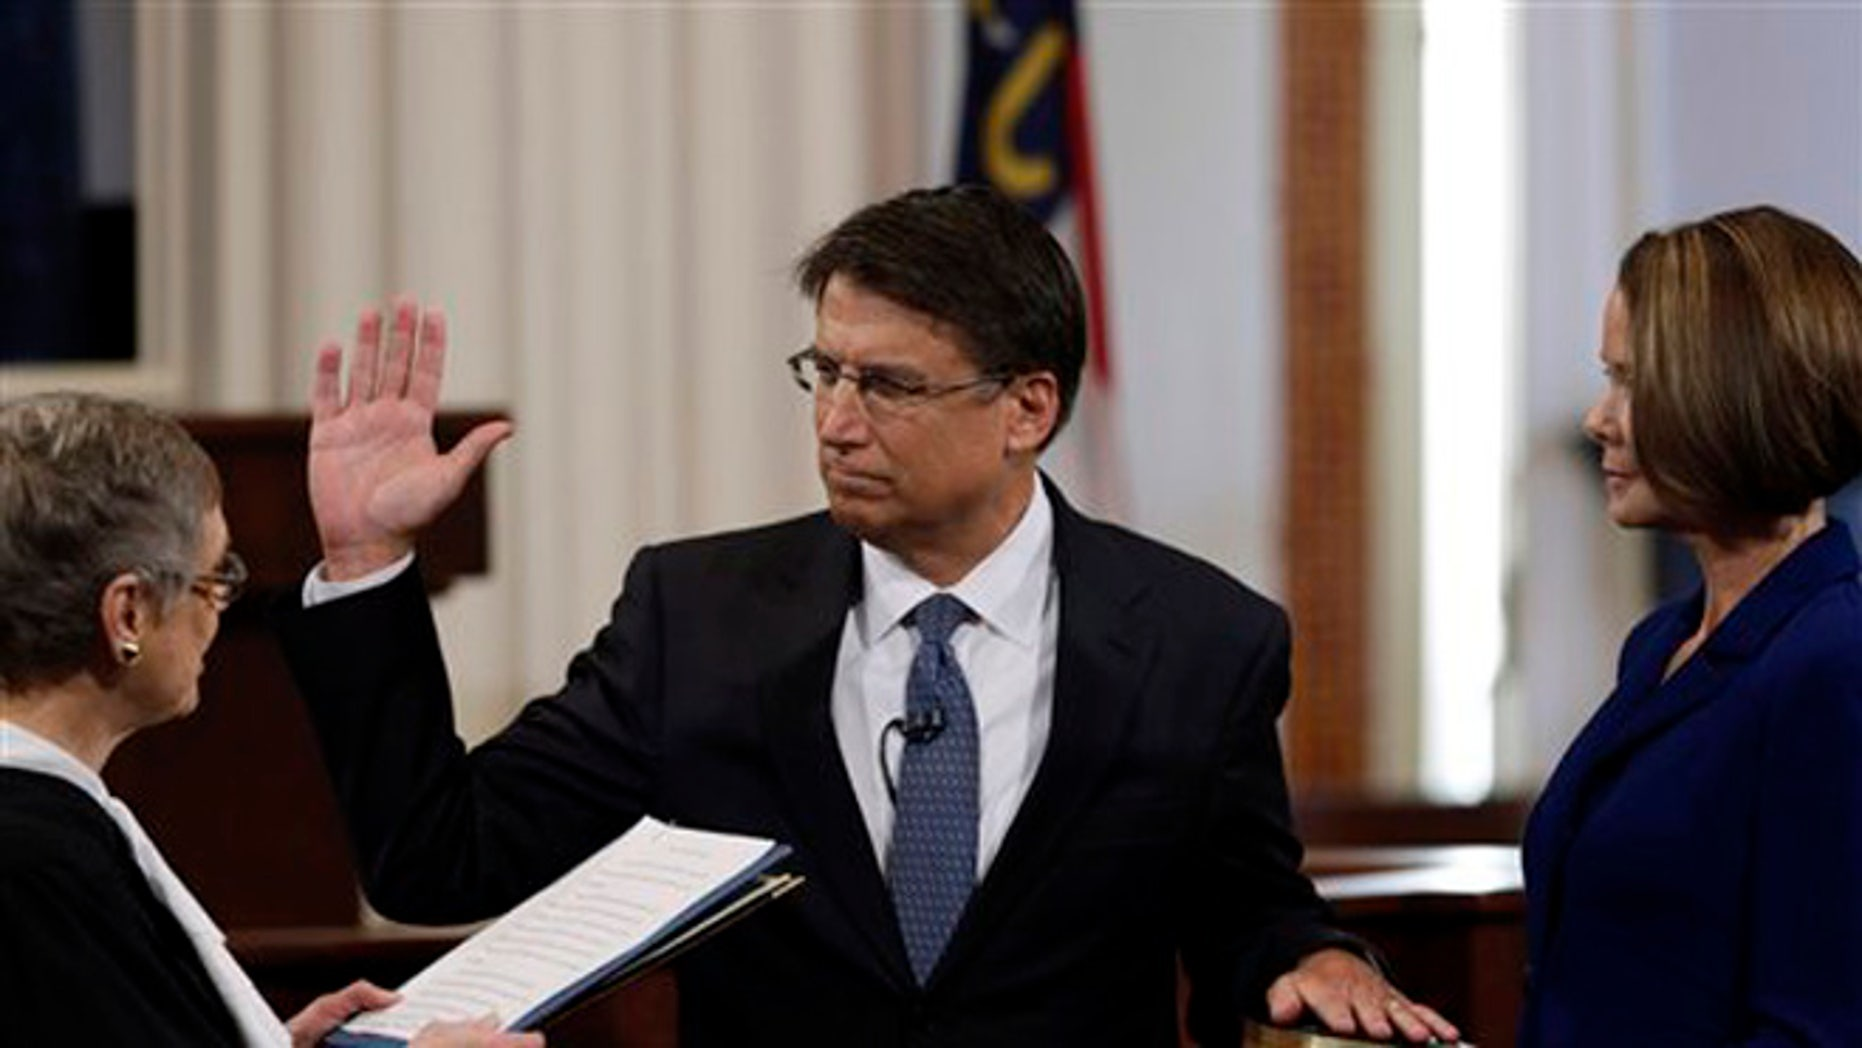 FILE: Jan. 5, 2013: Then-Gov.-elect Pat McCrory is sworn in as North Carolina governor in the House chamber of the old Capitol building in Raleigh, N.C.